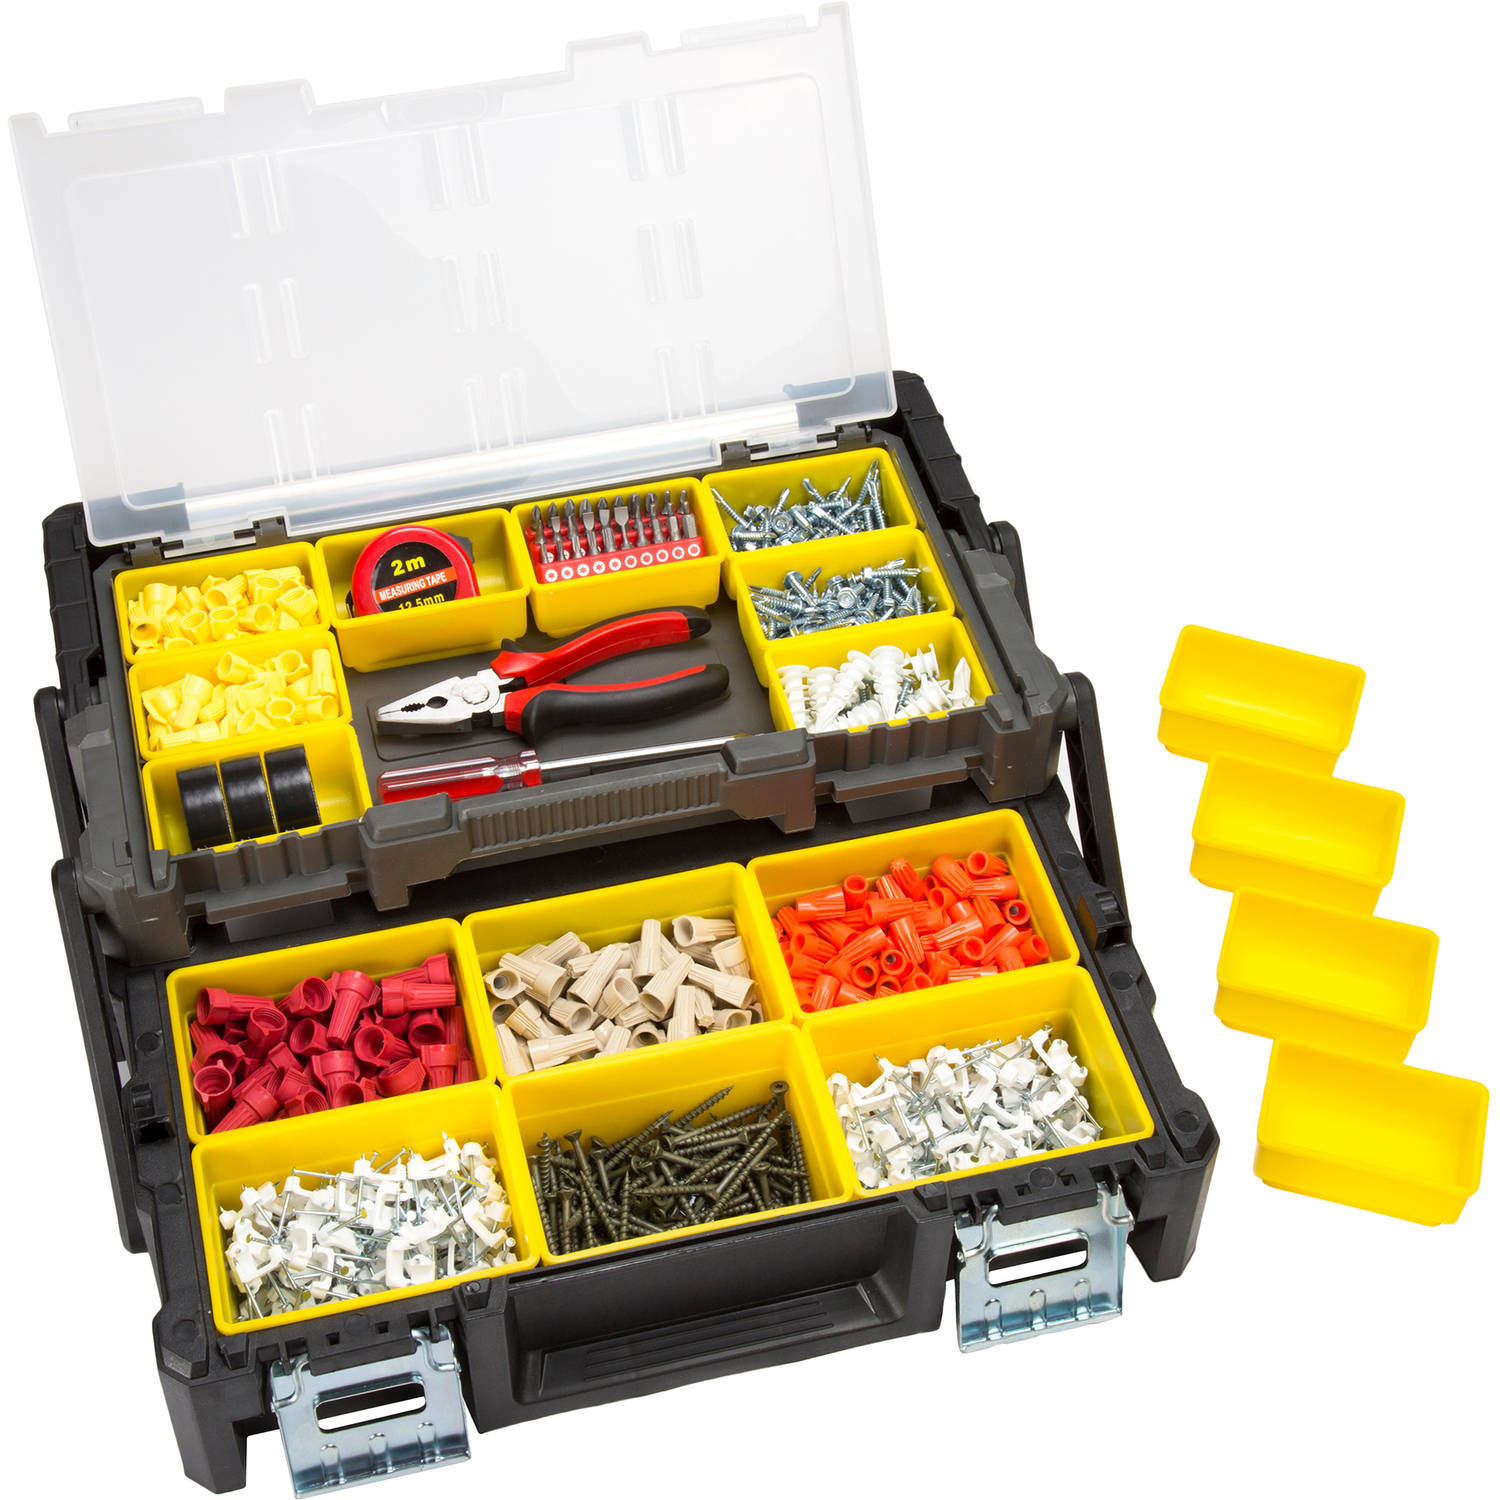 """Stalwart Parts and Crafts Tiered-Storage Tool Box 18"""" by Trademark Global LLC"""